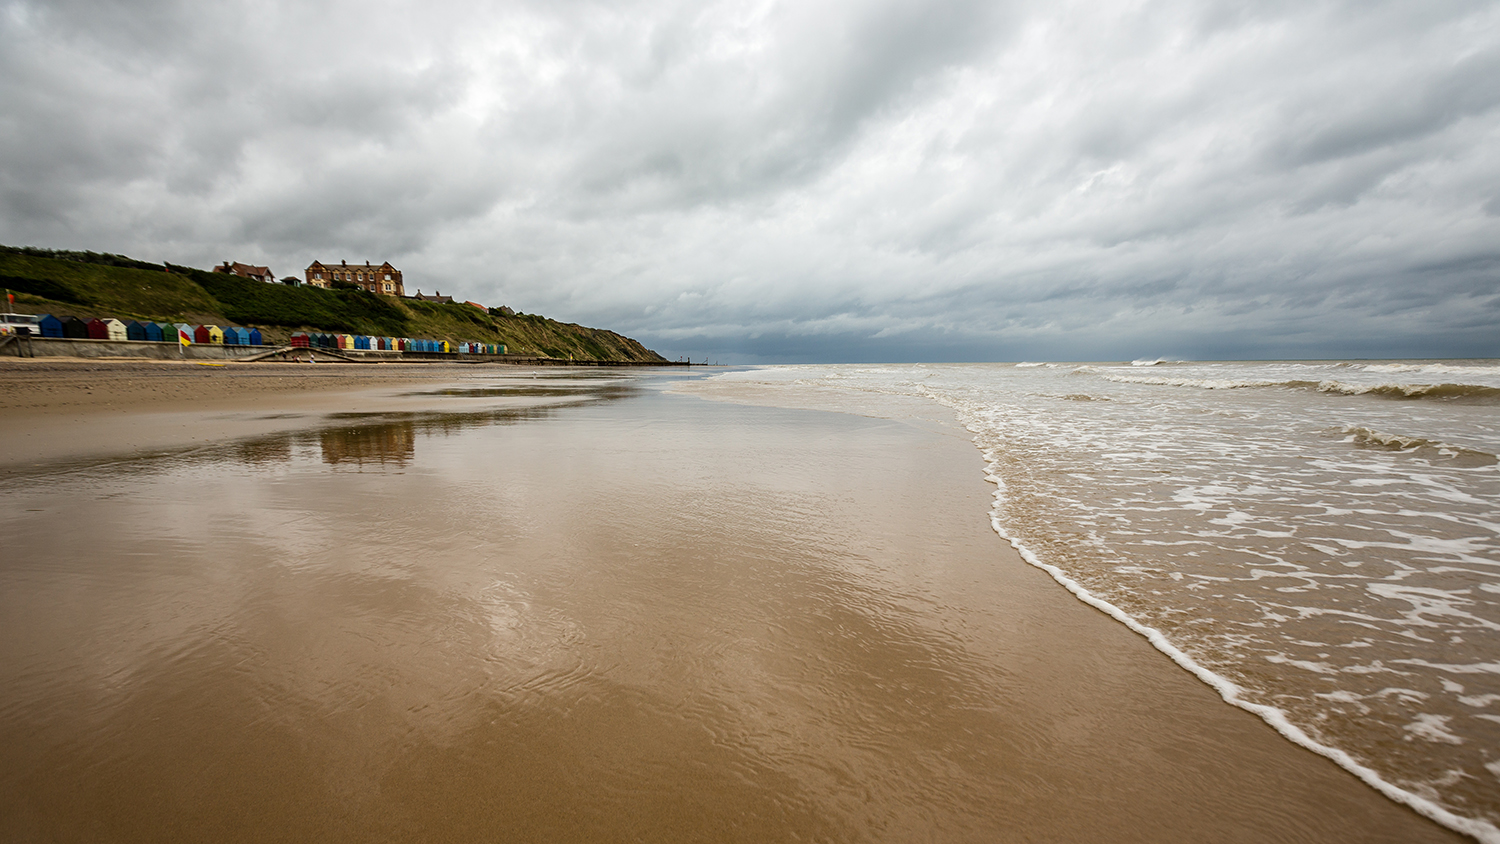 Mundesley Beach at Mundesley in Norfolk is an RNLI lifeguarded beach.